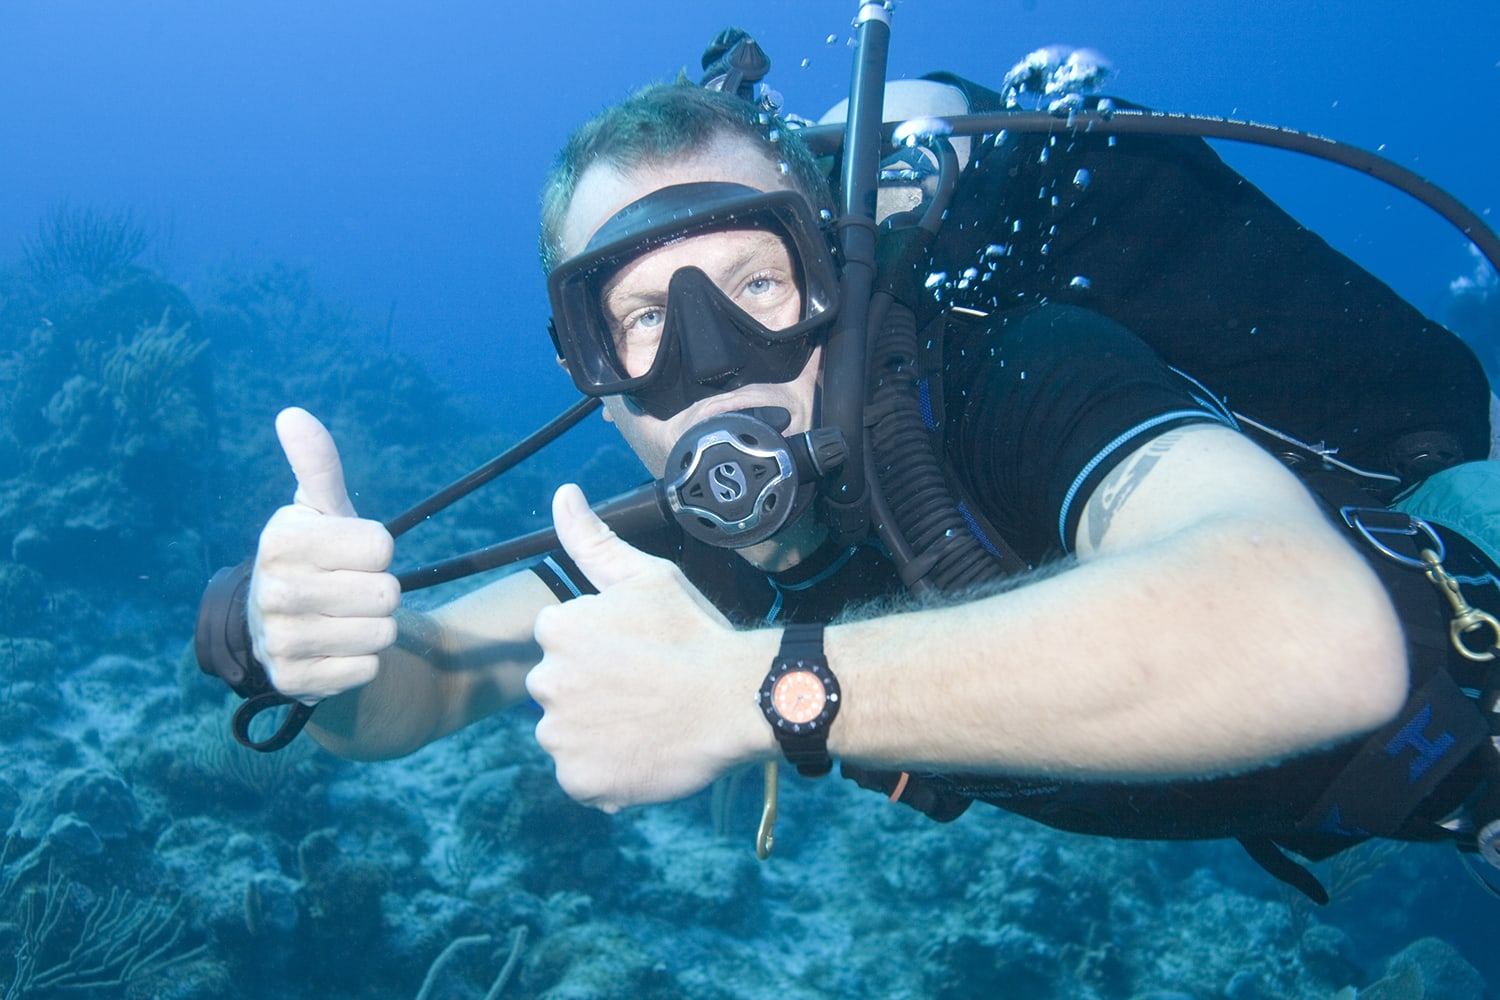 Discover Scuba Experience - Canning Vale, Perth